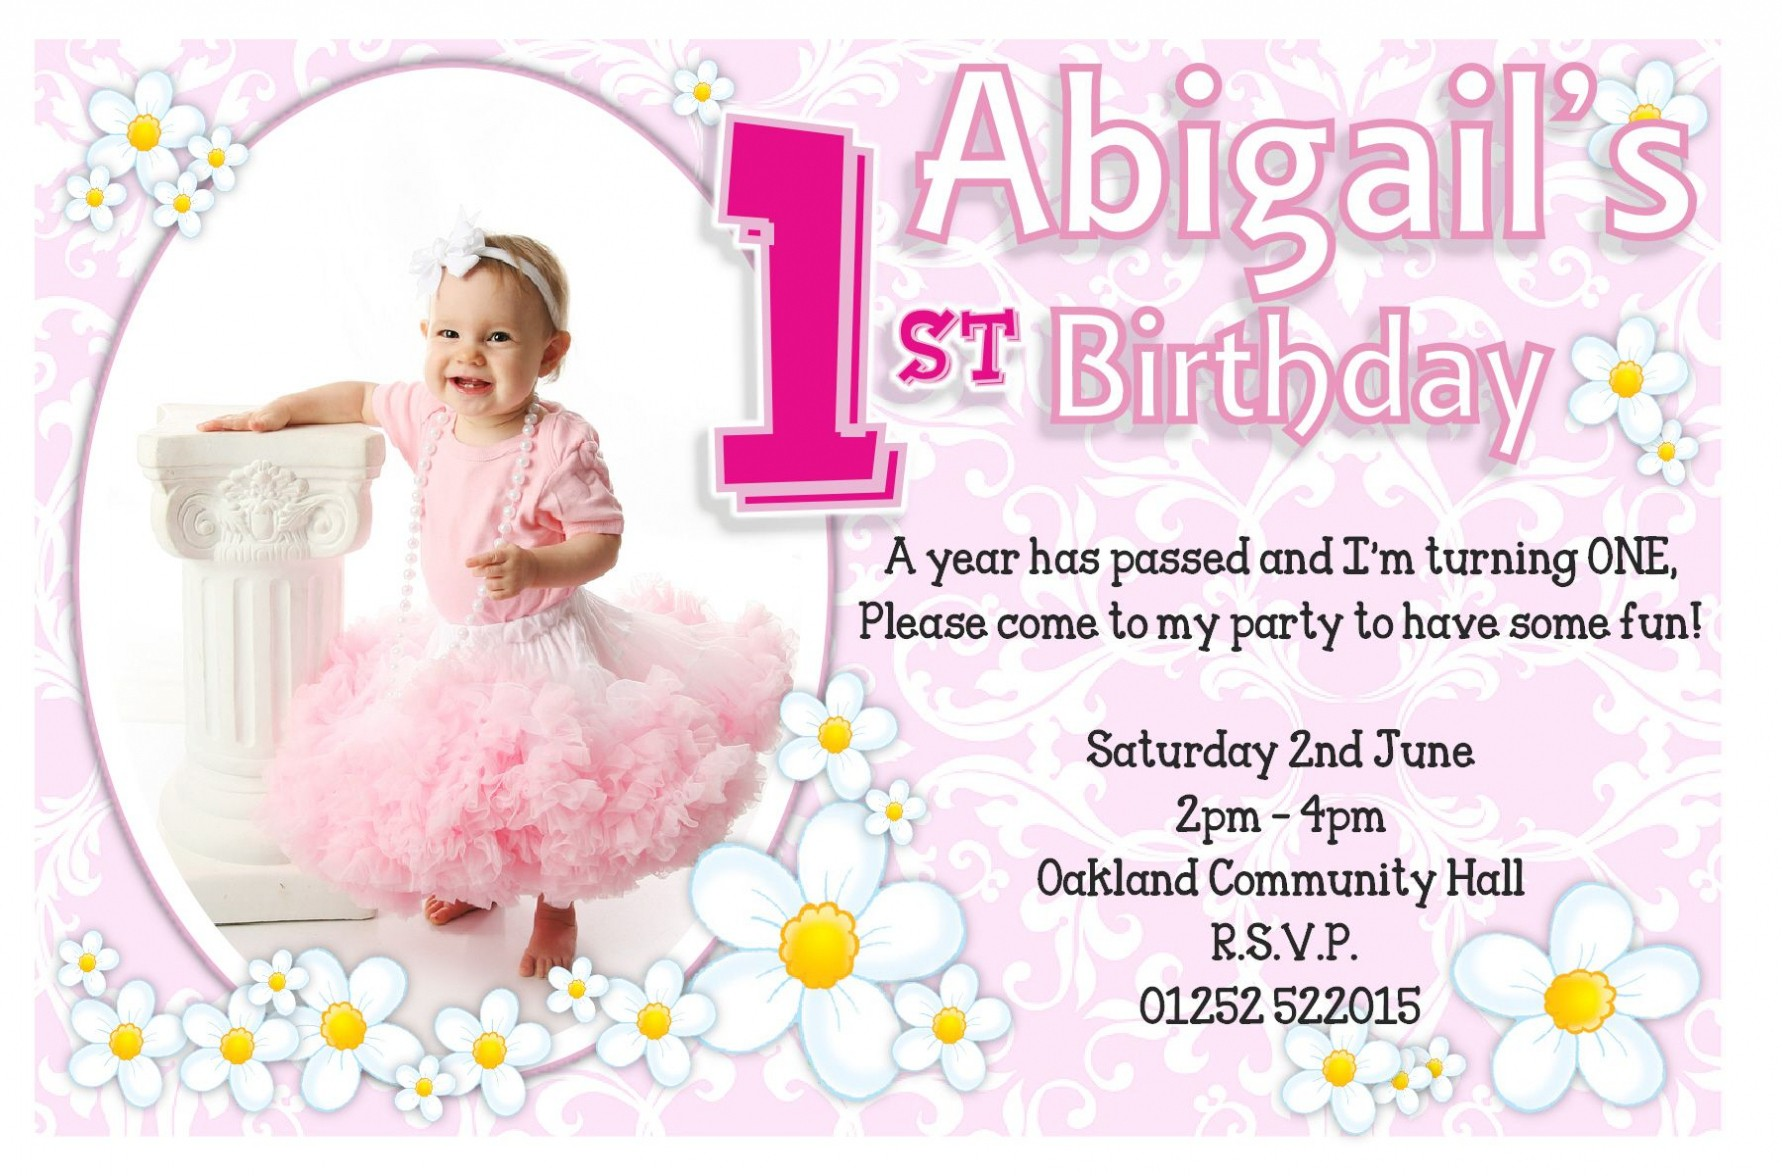 invitation letter for 1st birthday party ; invitation-sample-for-1st-birthday-save-invitation-message-for-1st-birthday-party-birthday-first-birthday-of-invitation-sample-for-1st-birthday